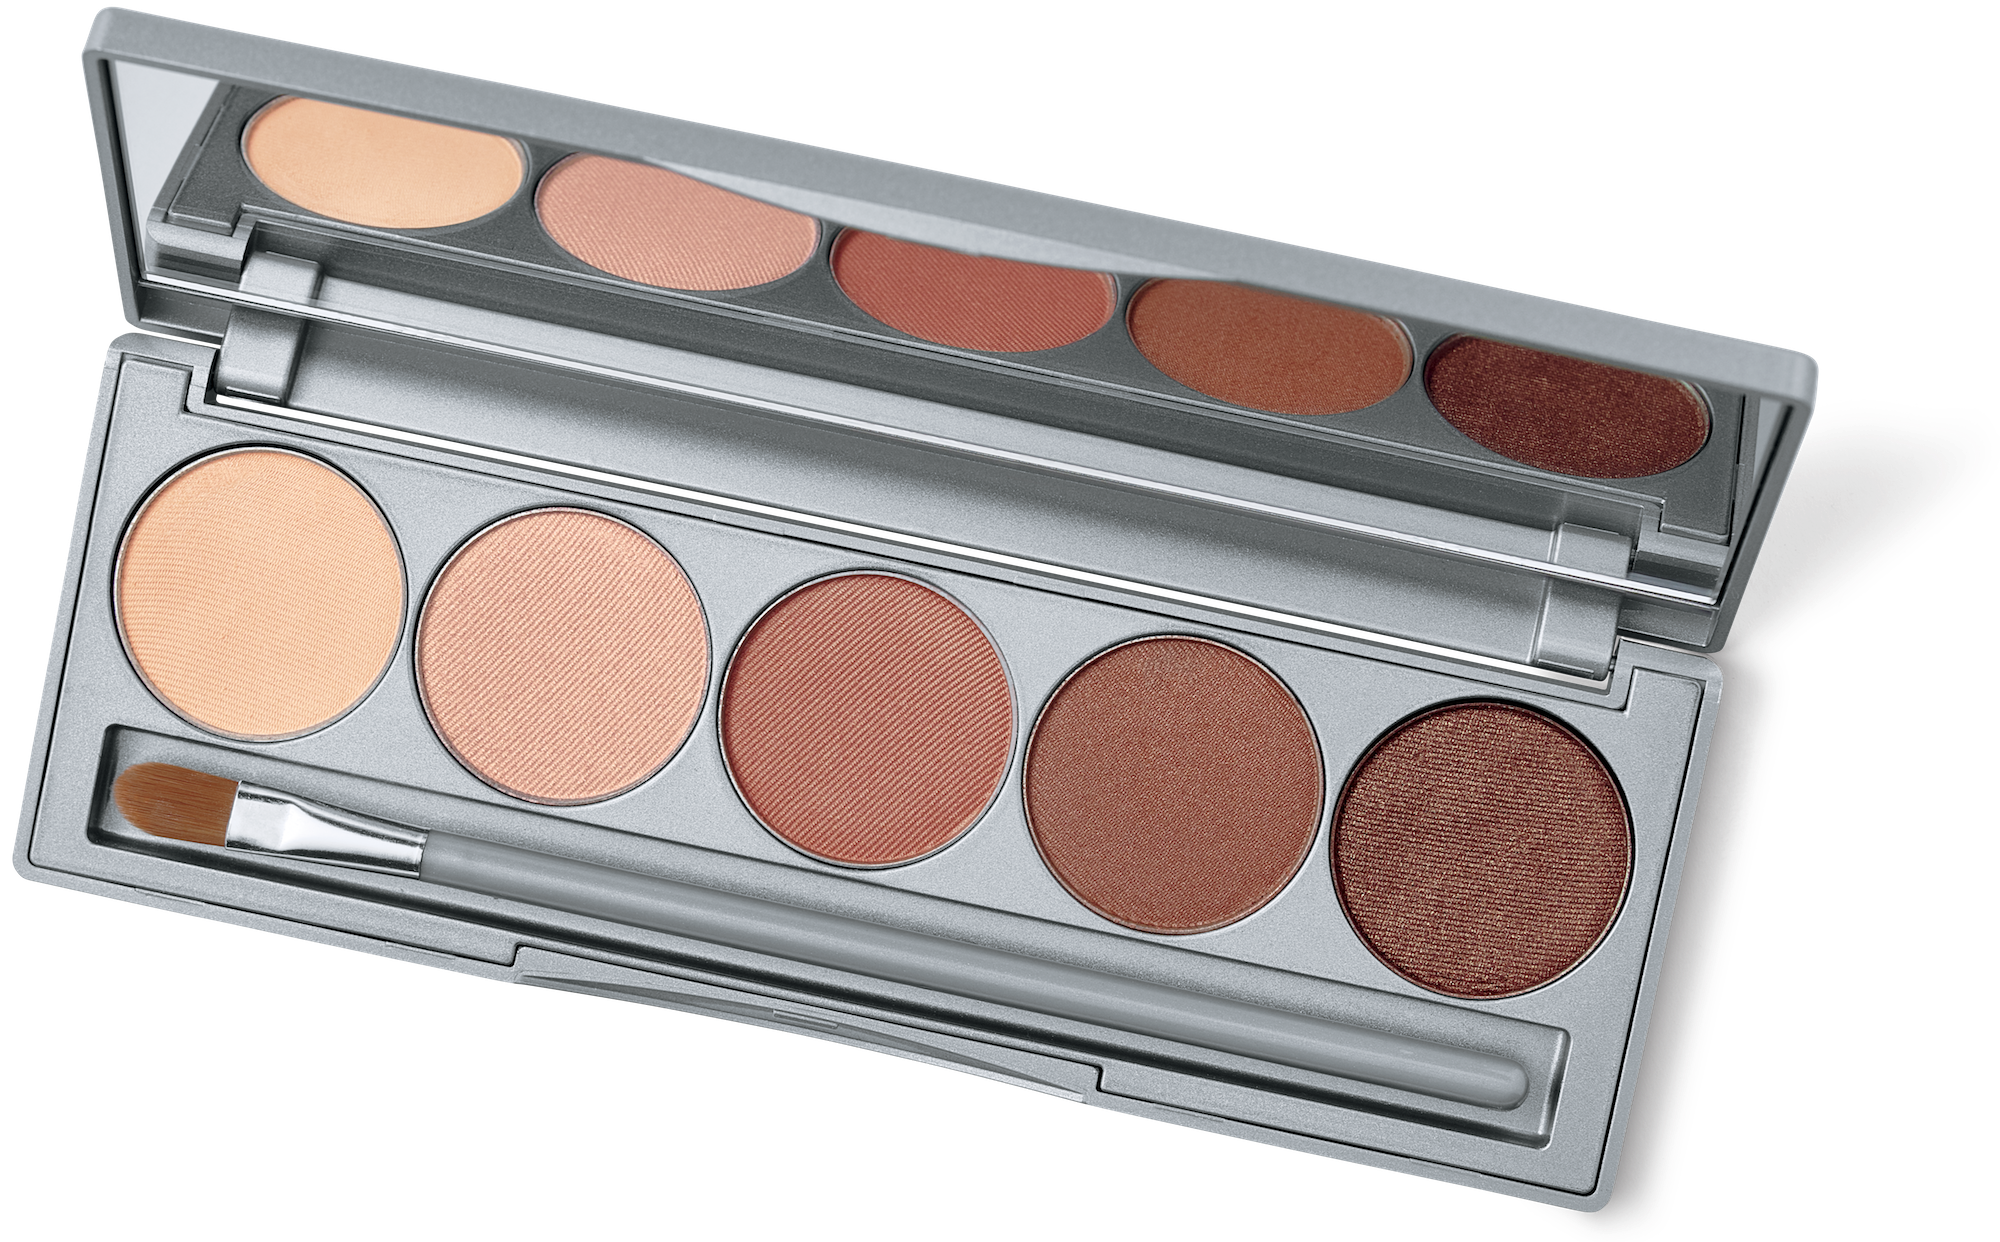 Beauty on the Go Palette Overhead